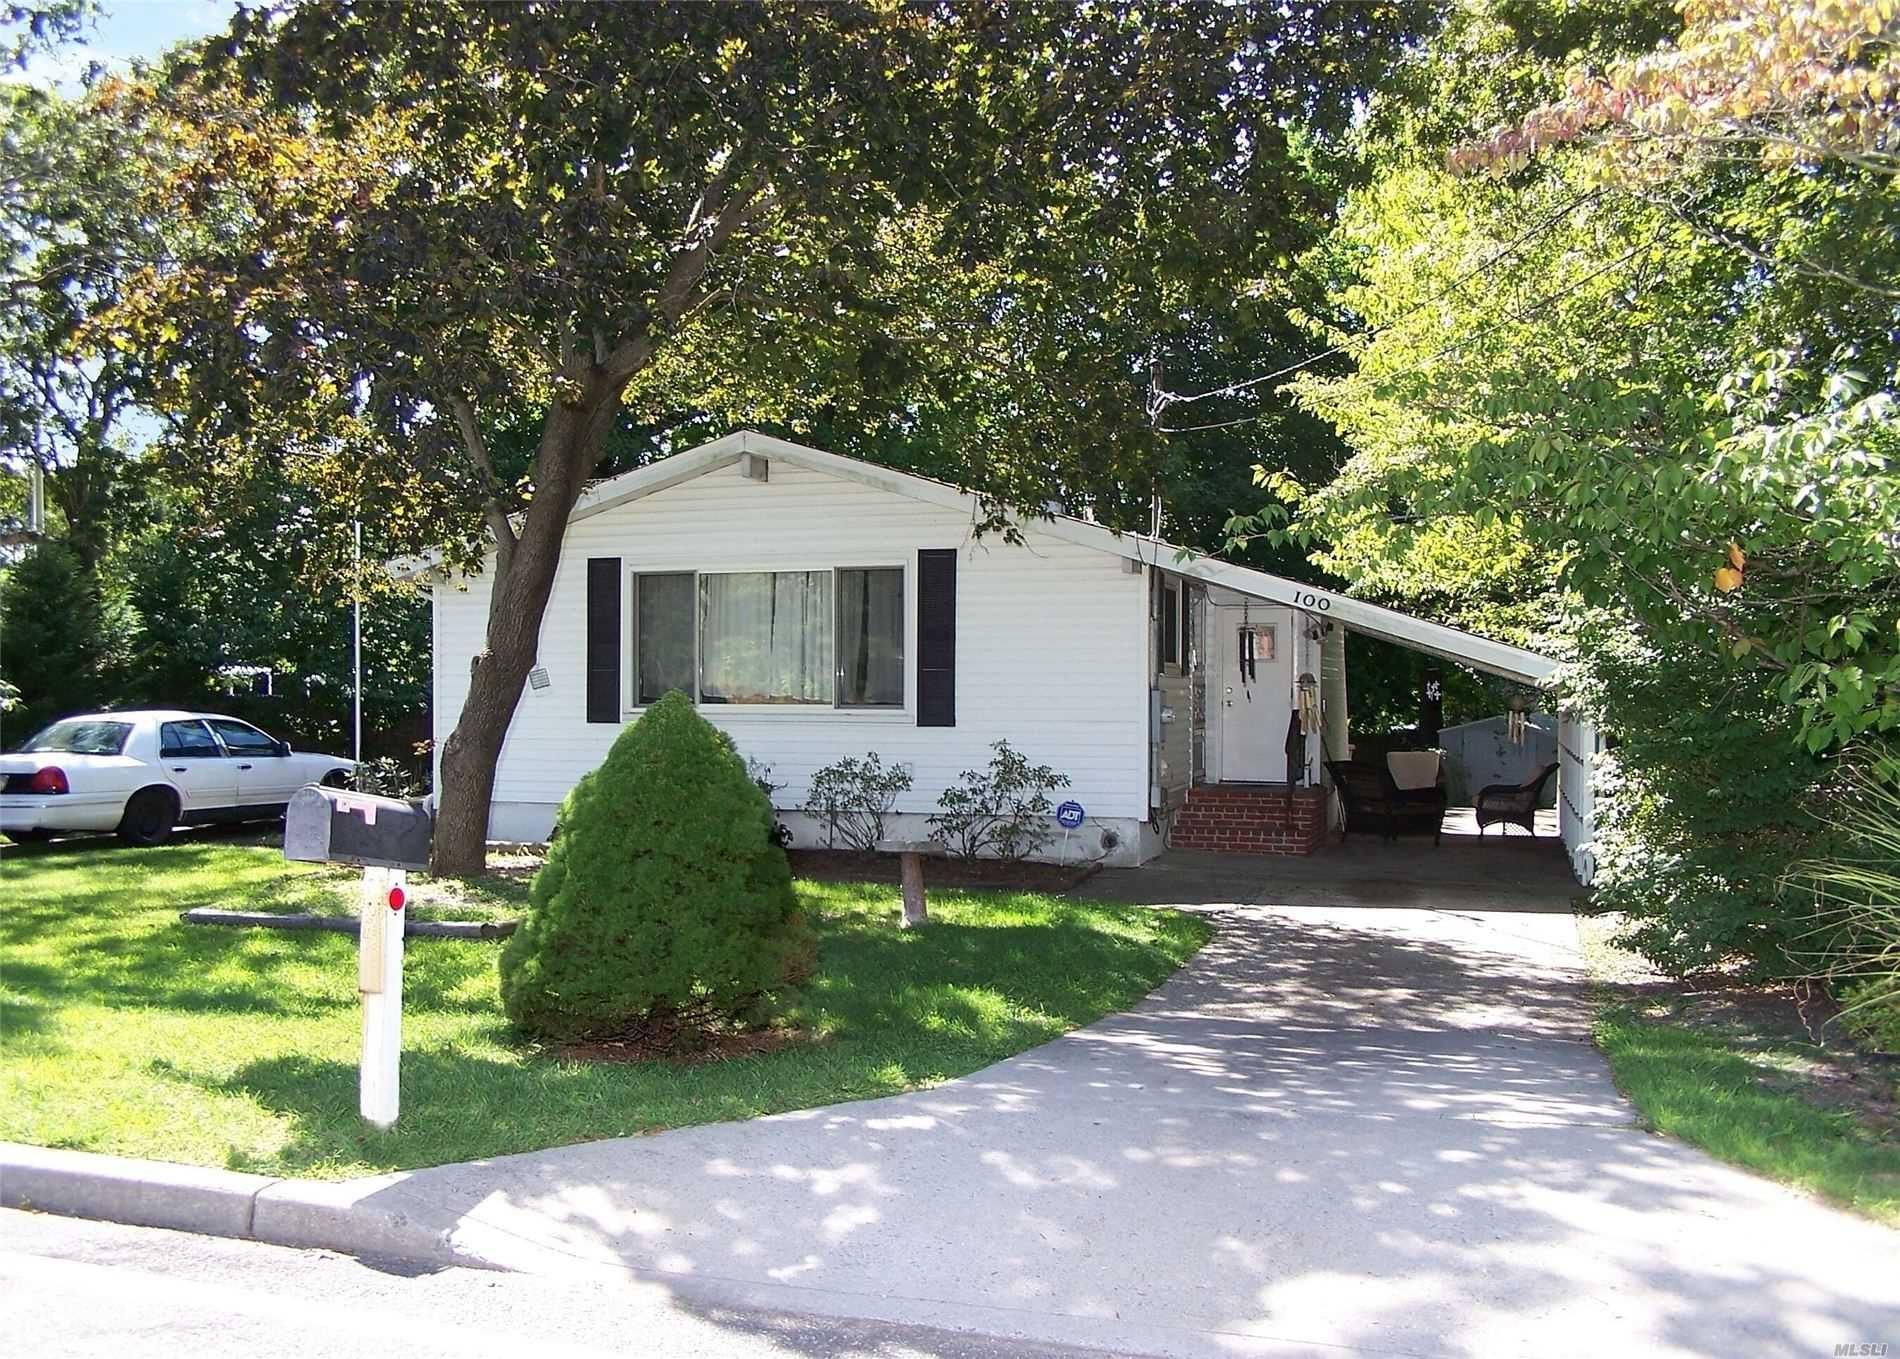 100 S Coleman Rd, Centereach, NY 11720 - MLS#: 3216967